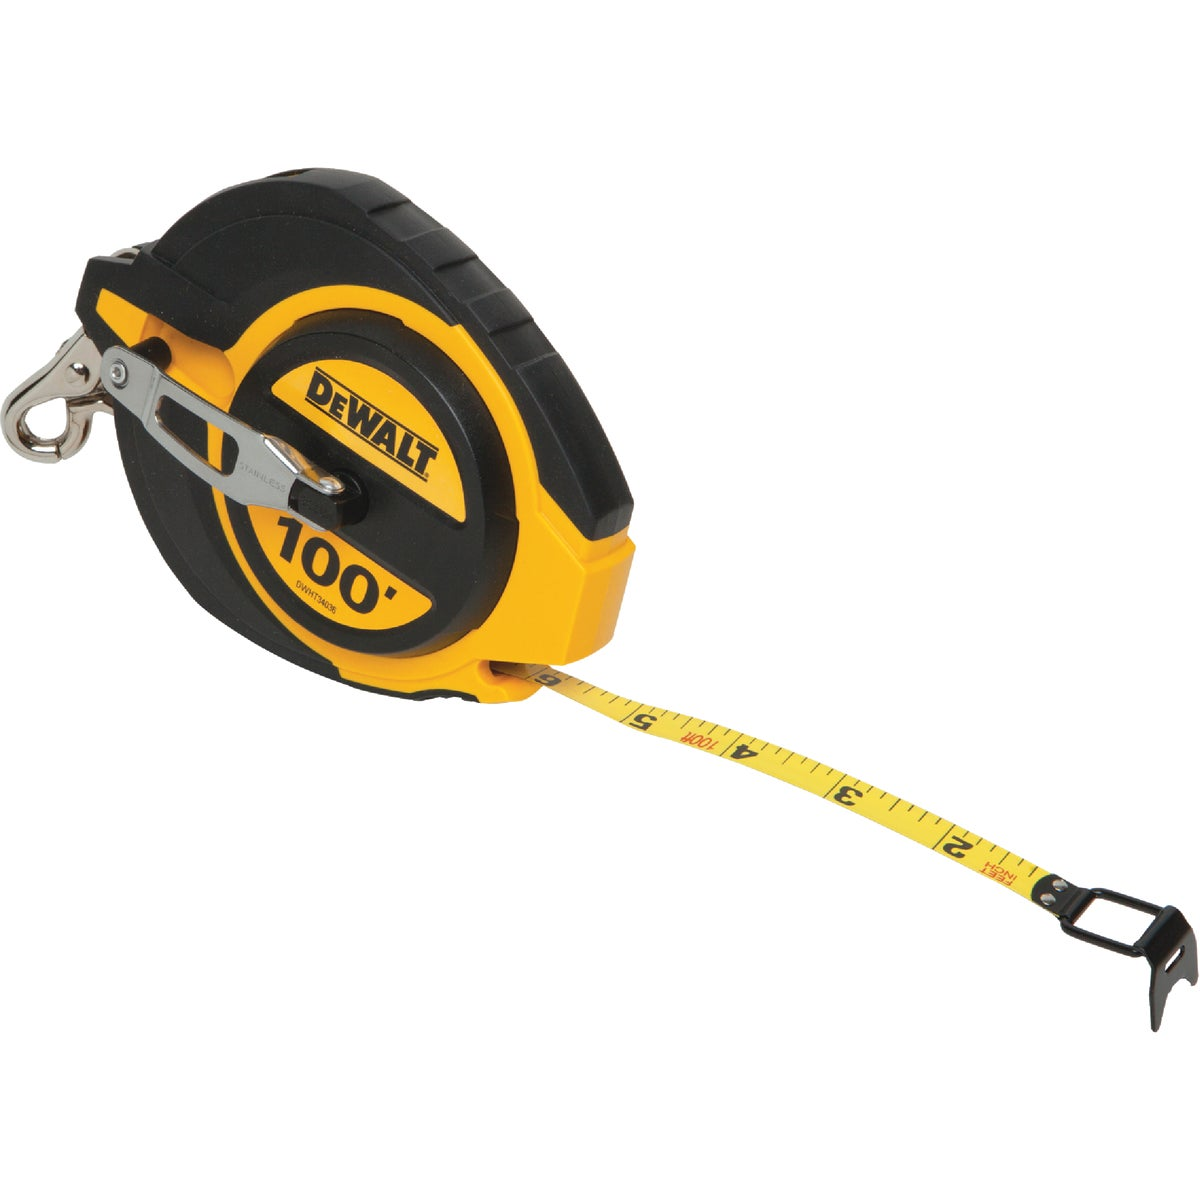 100' CLOSED TAPE REEL - DWHT34036 by Stanley Tools